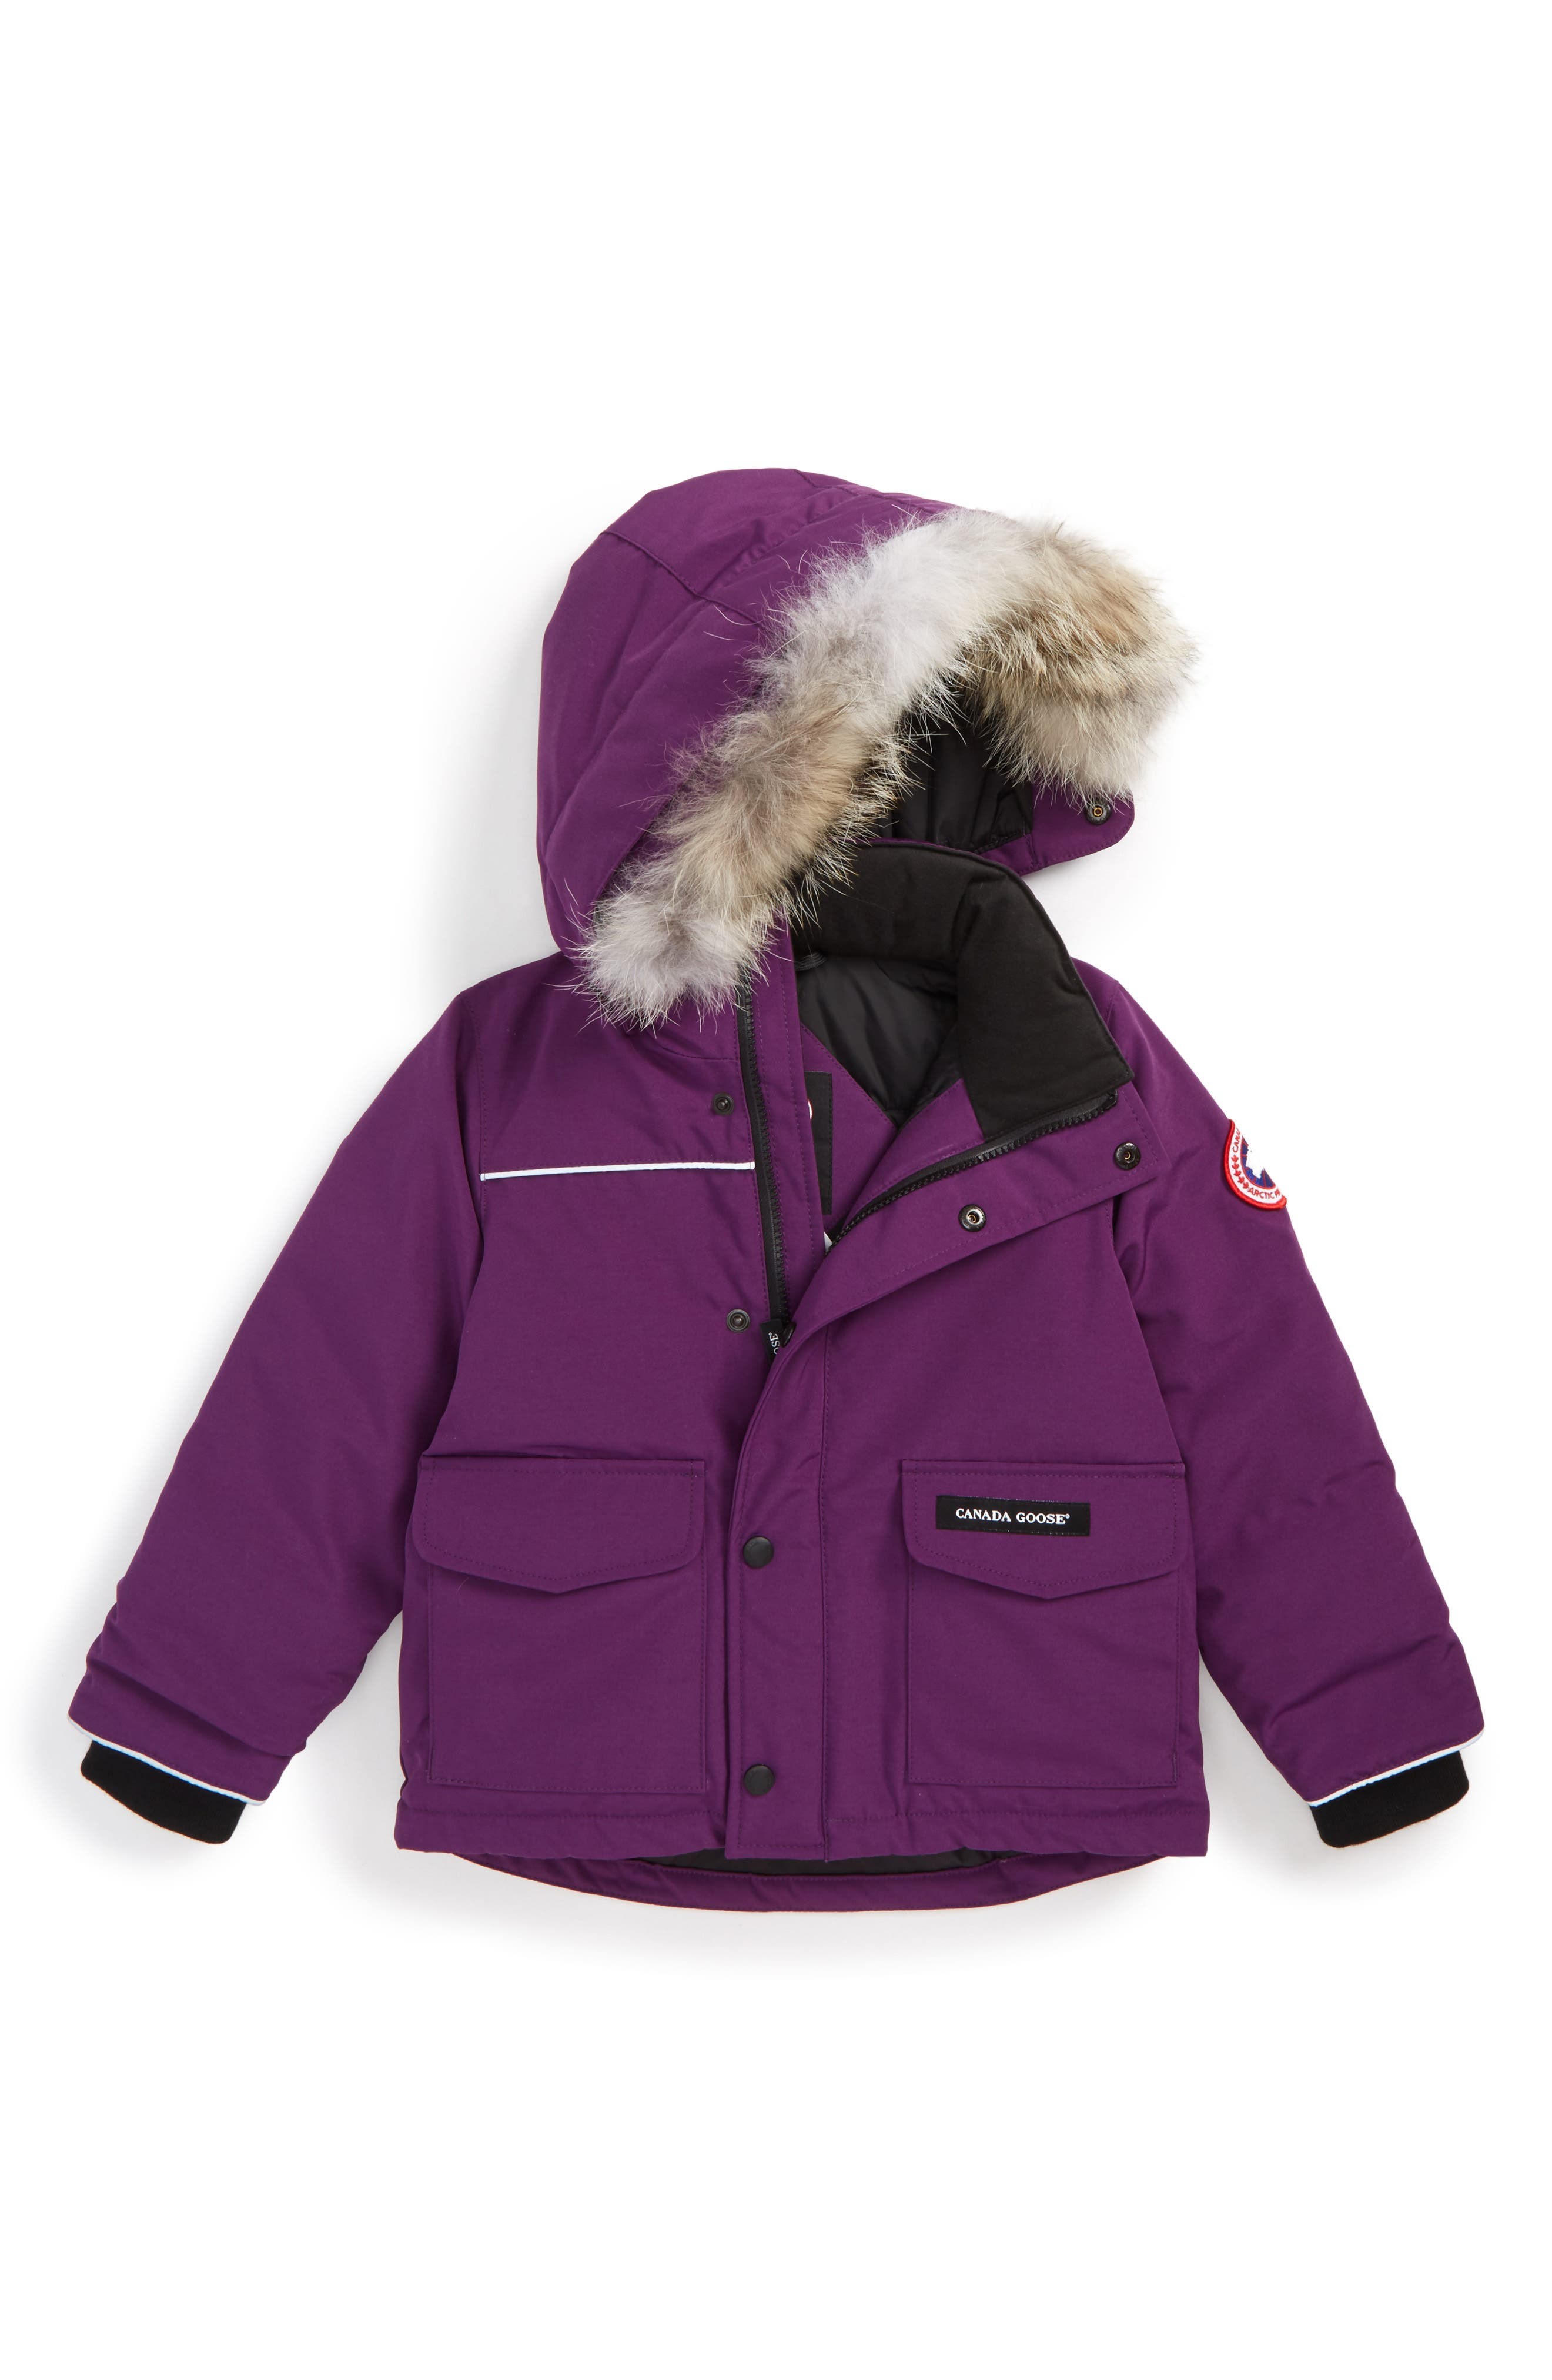 Main Image - Canada Goose 'Lynx' Down Parka with Genuine Coyote Fur Trim (Toddler & Little Kids)